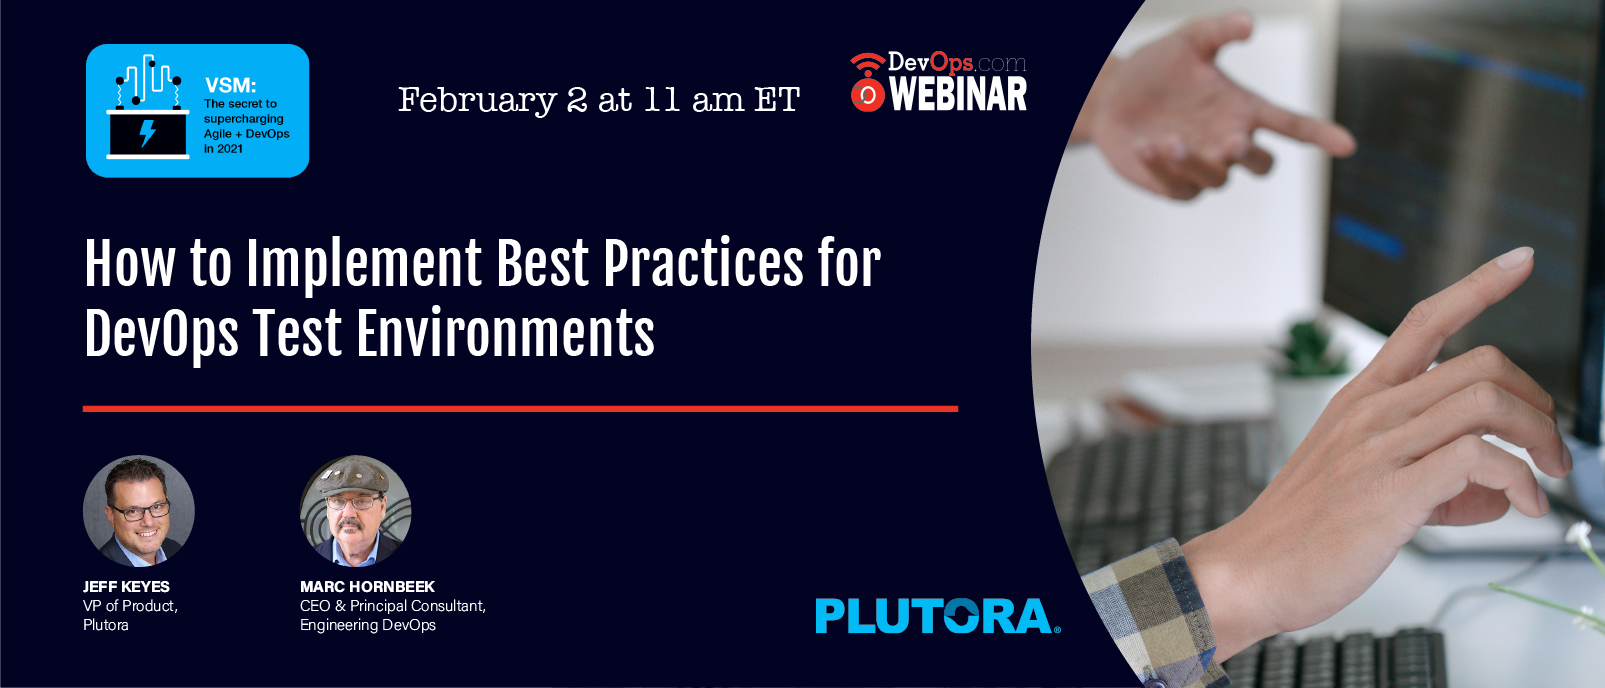 How to Implement Best Practices for DevOps Test Environments